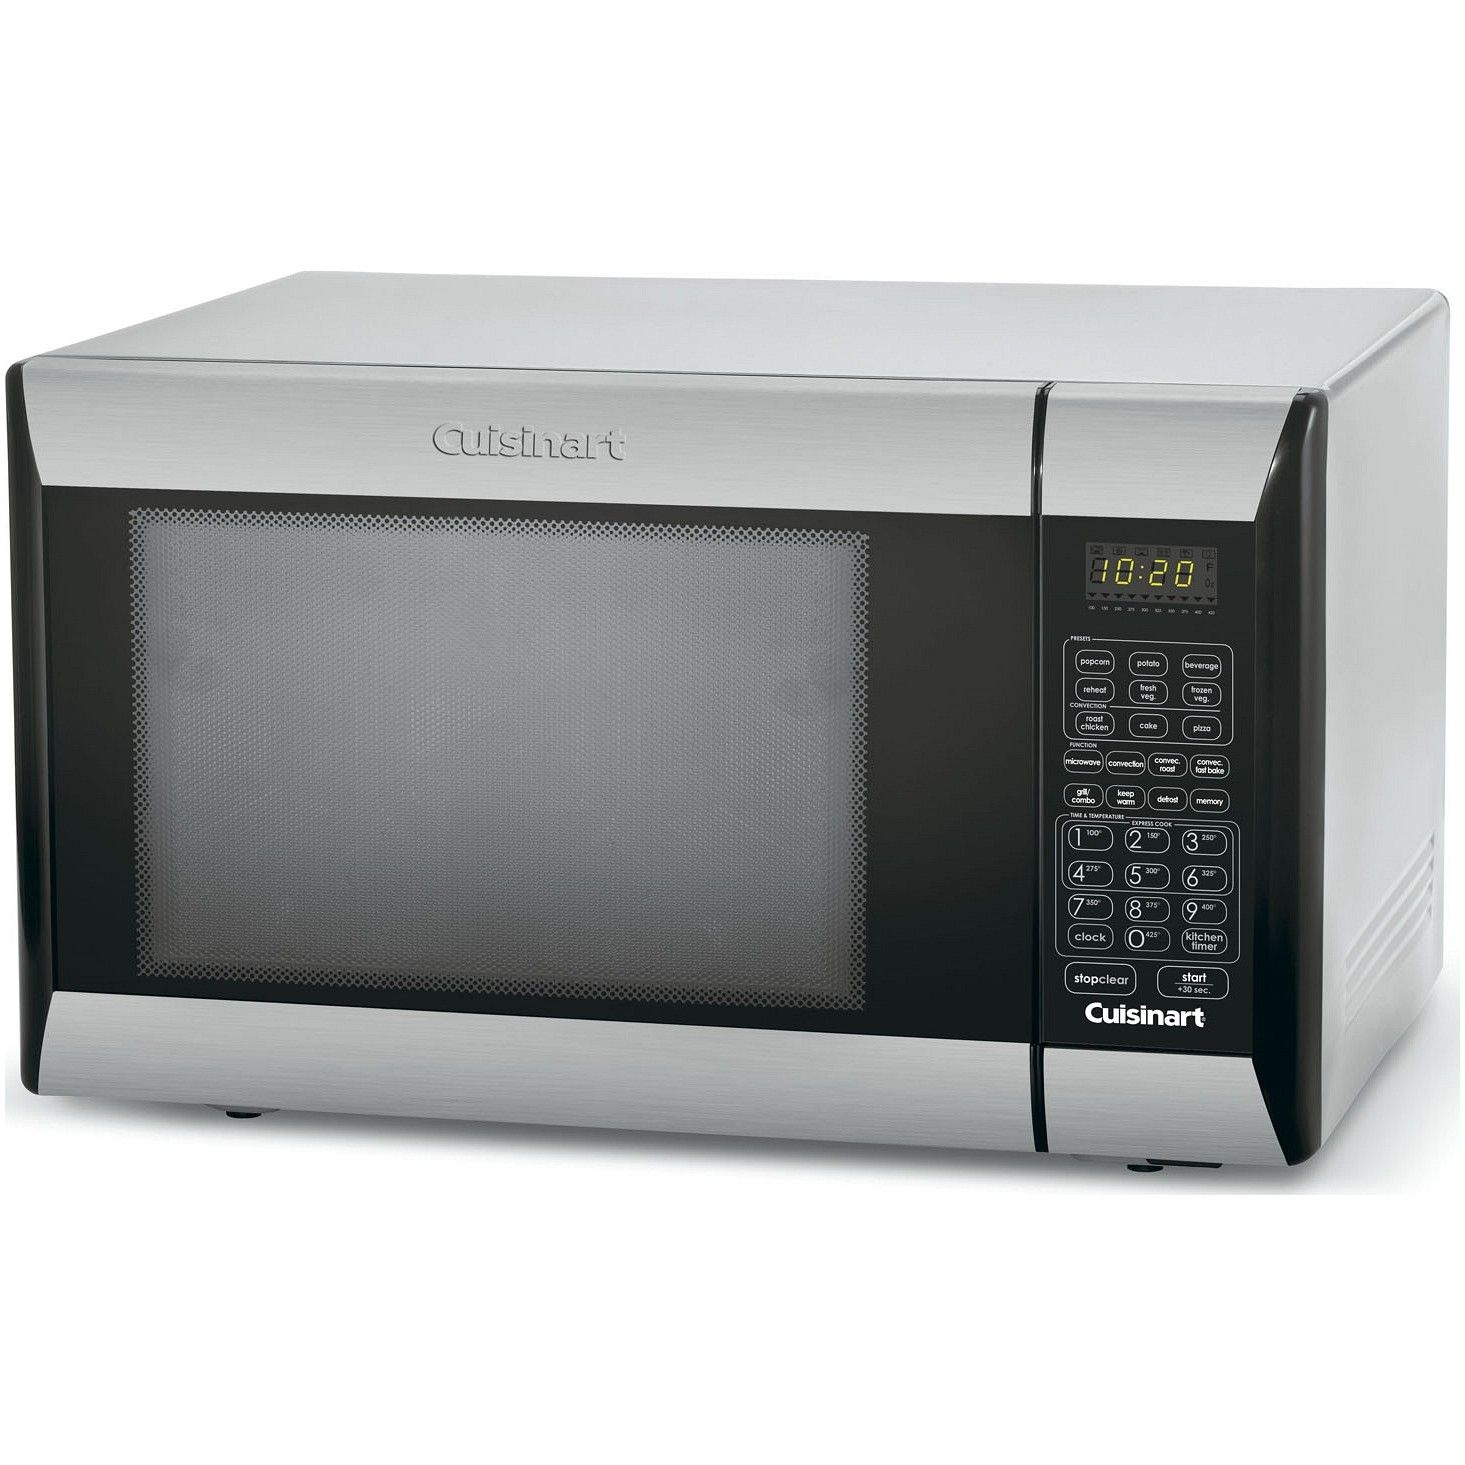 Countertop Microwave Convection Ovens Cuisinart Stainless Steel Convection Microwave Oven